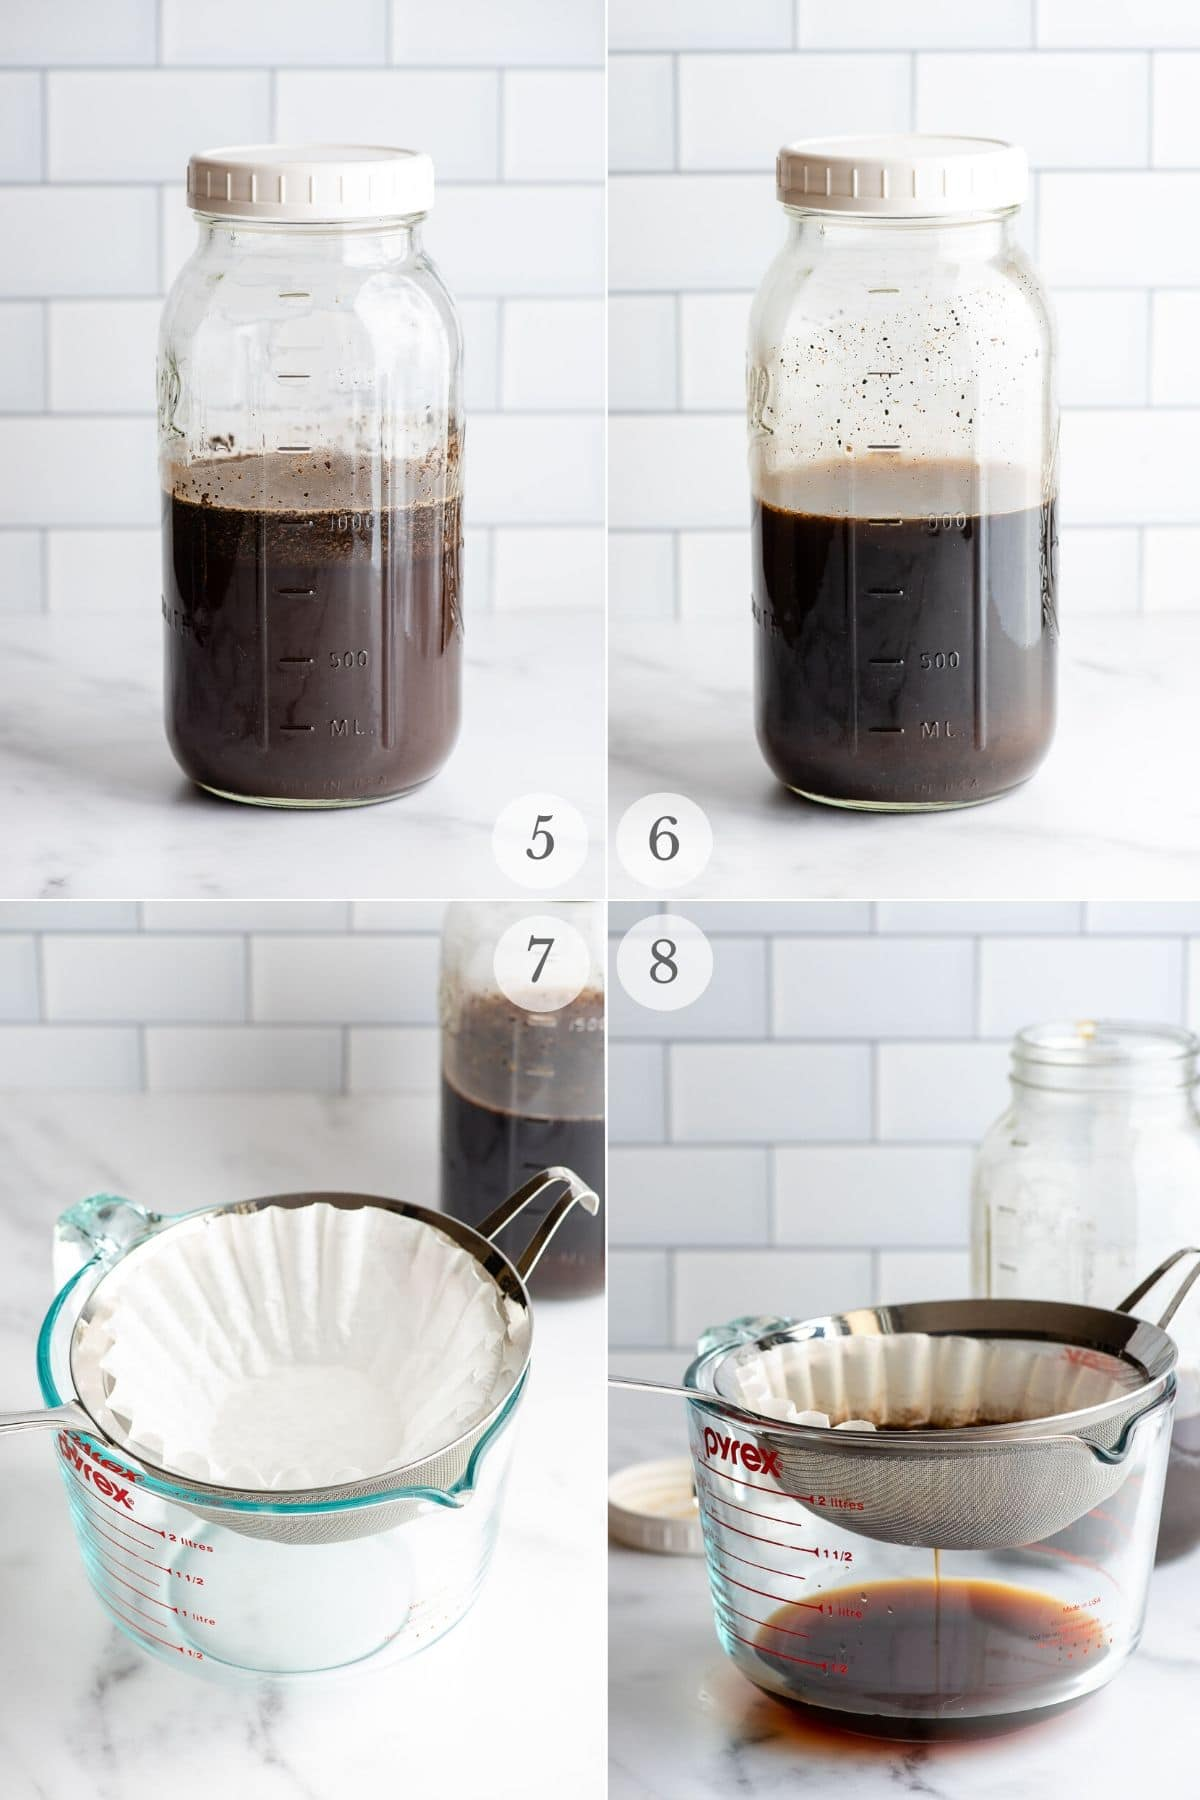 cold brew coffee recipe process steps 5-8 (brewing and straining)